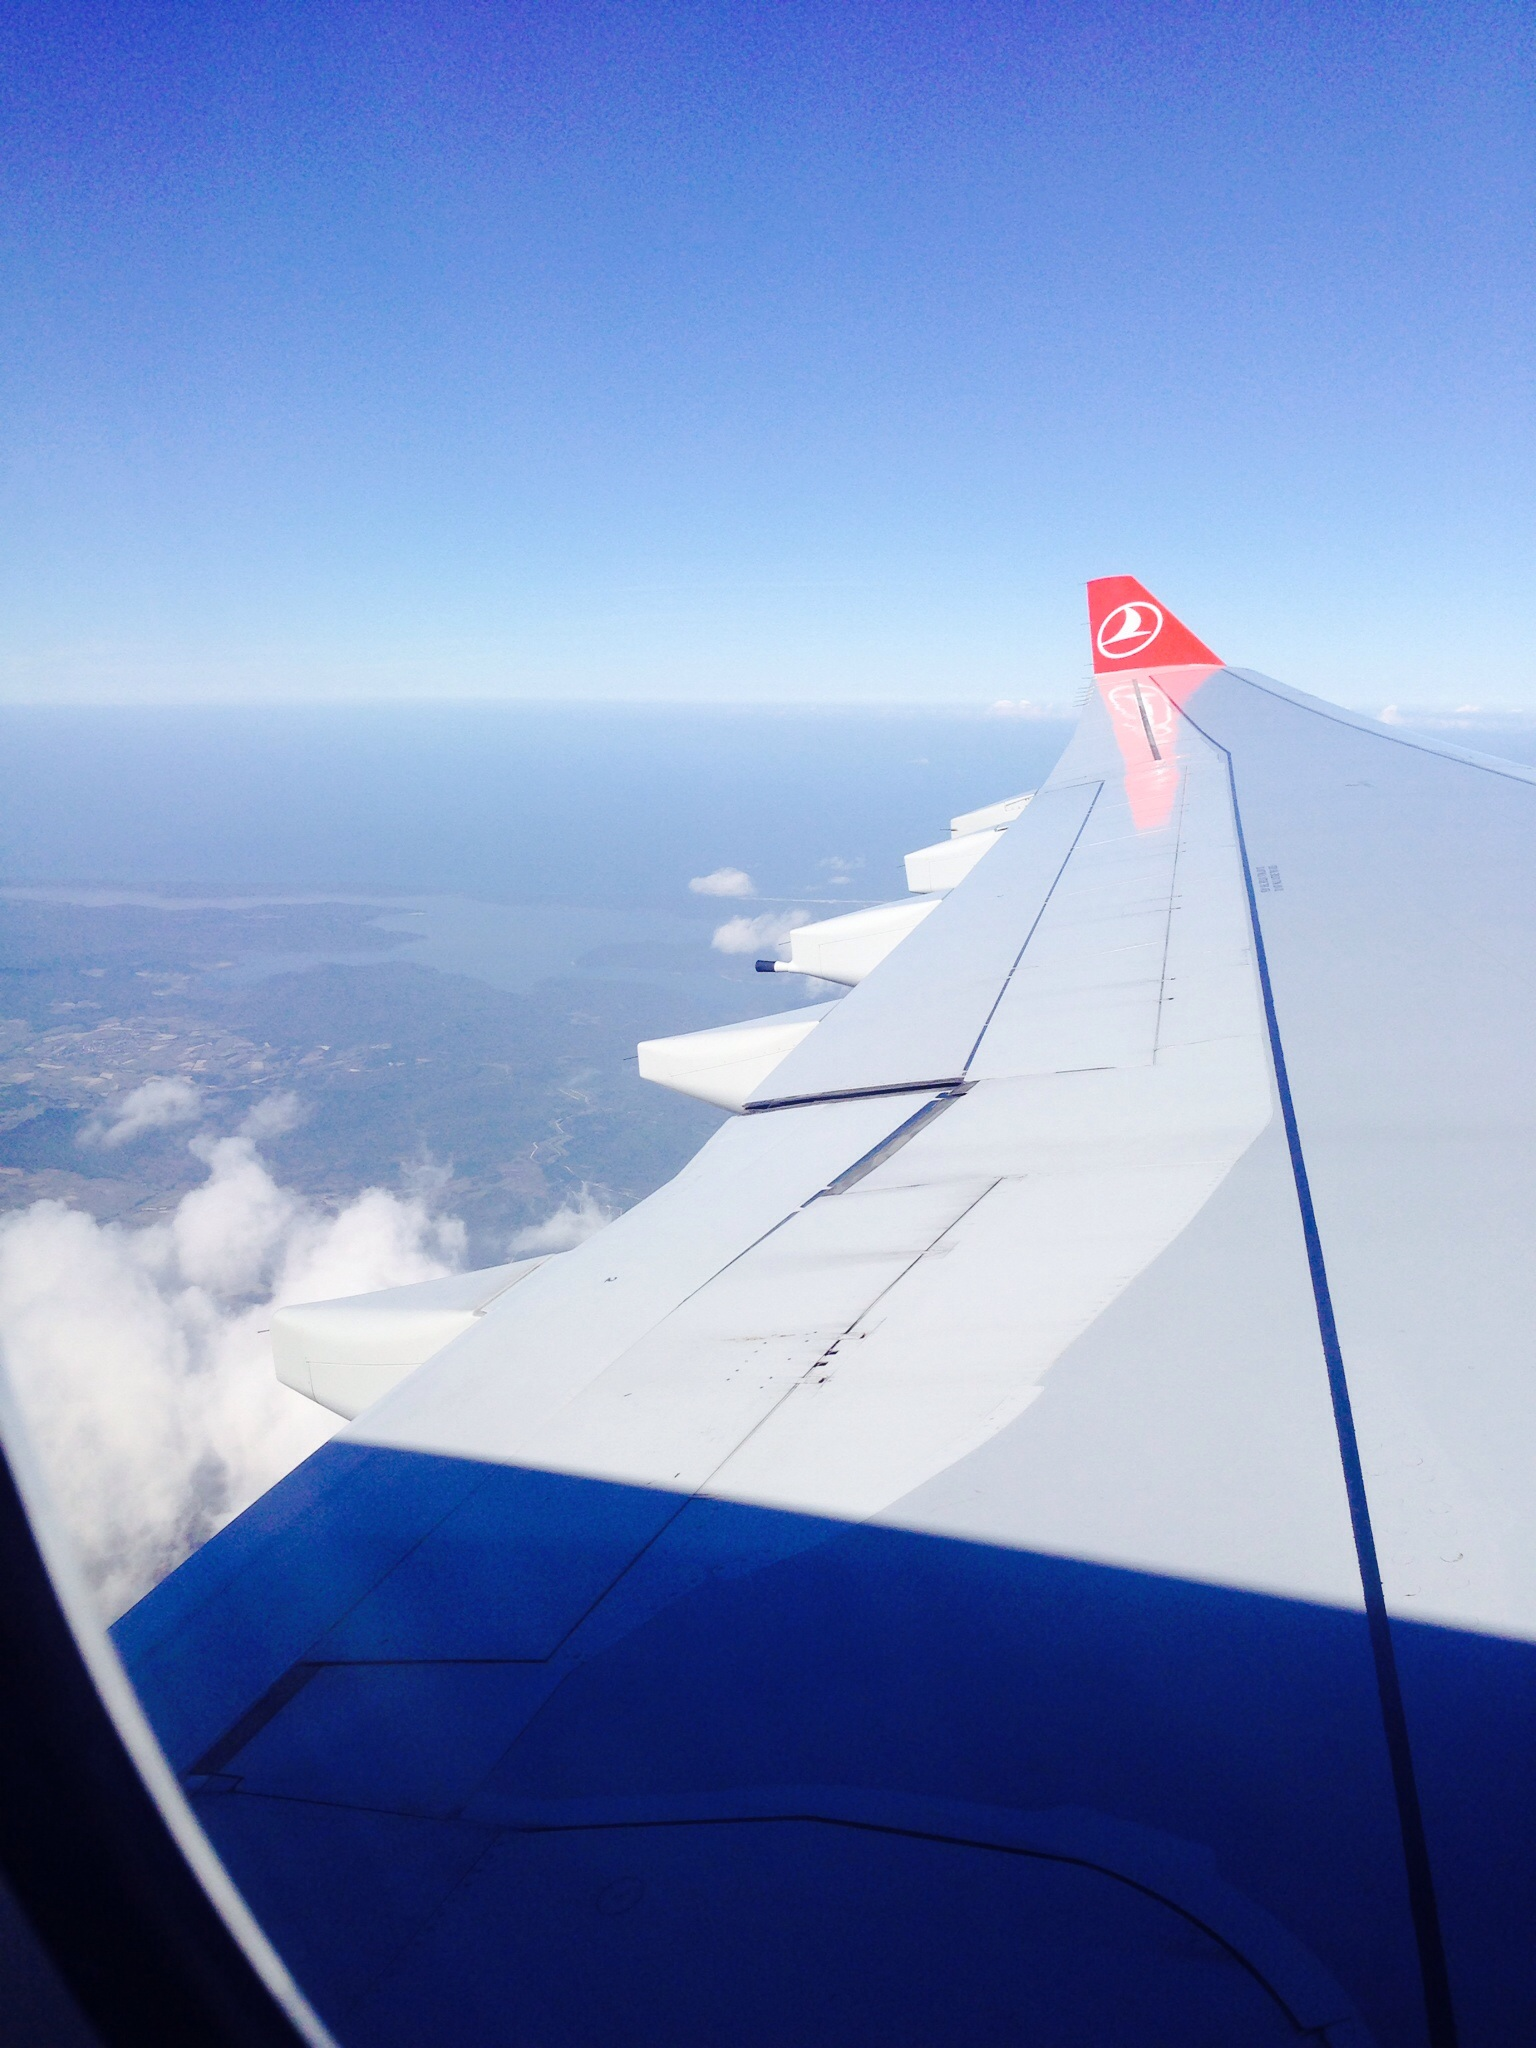 Sitting over the wing over Istanbul